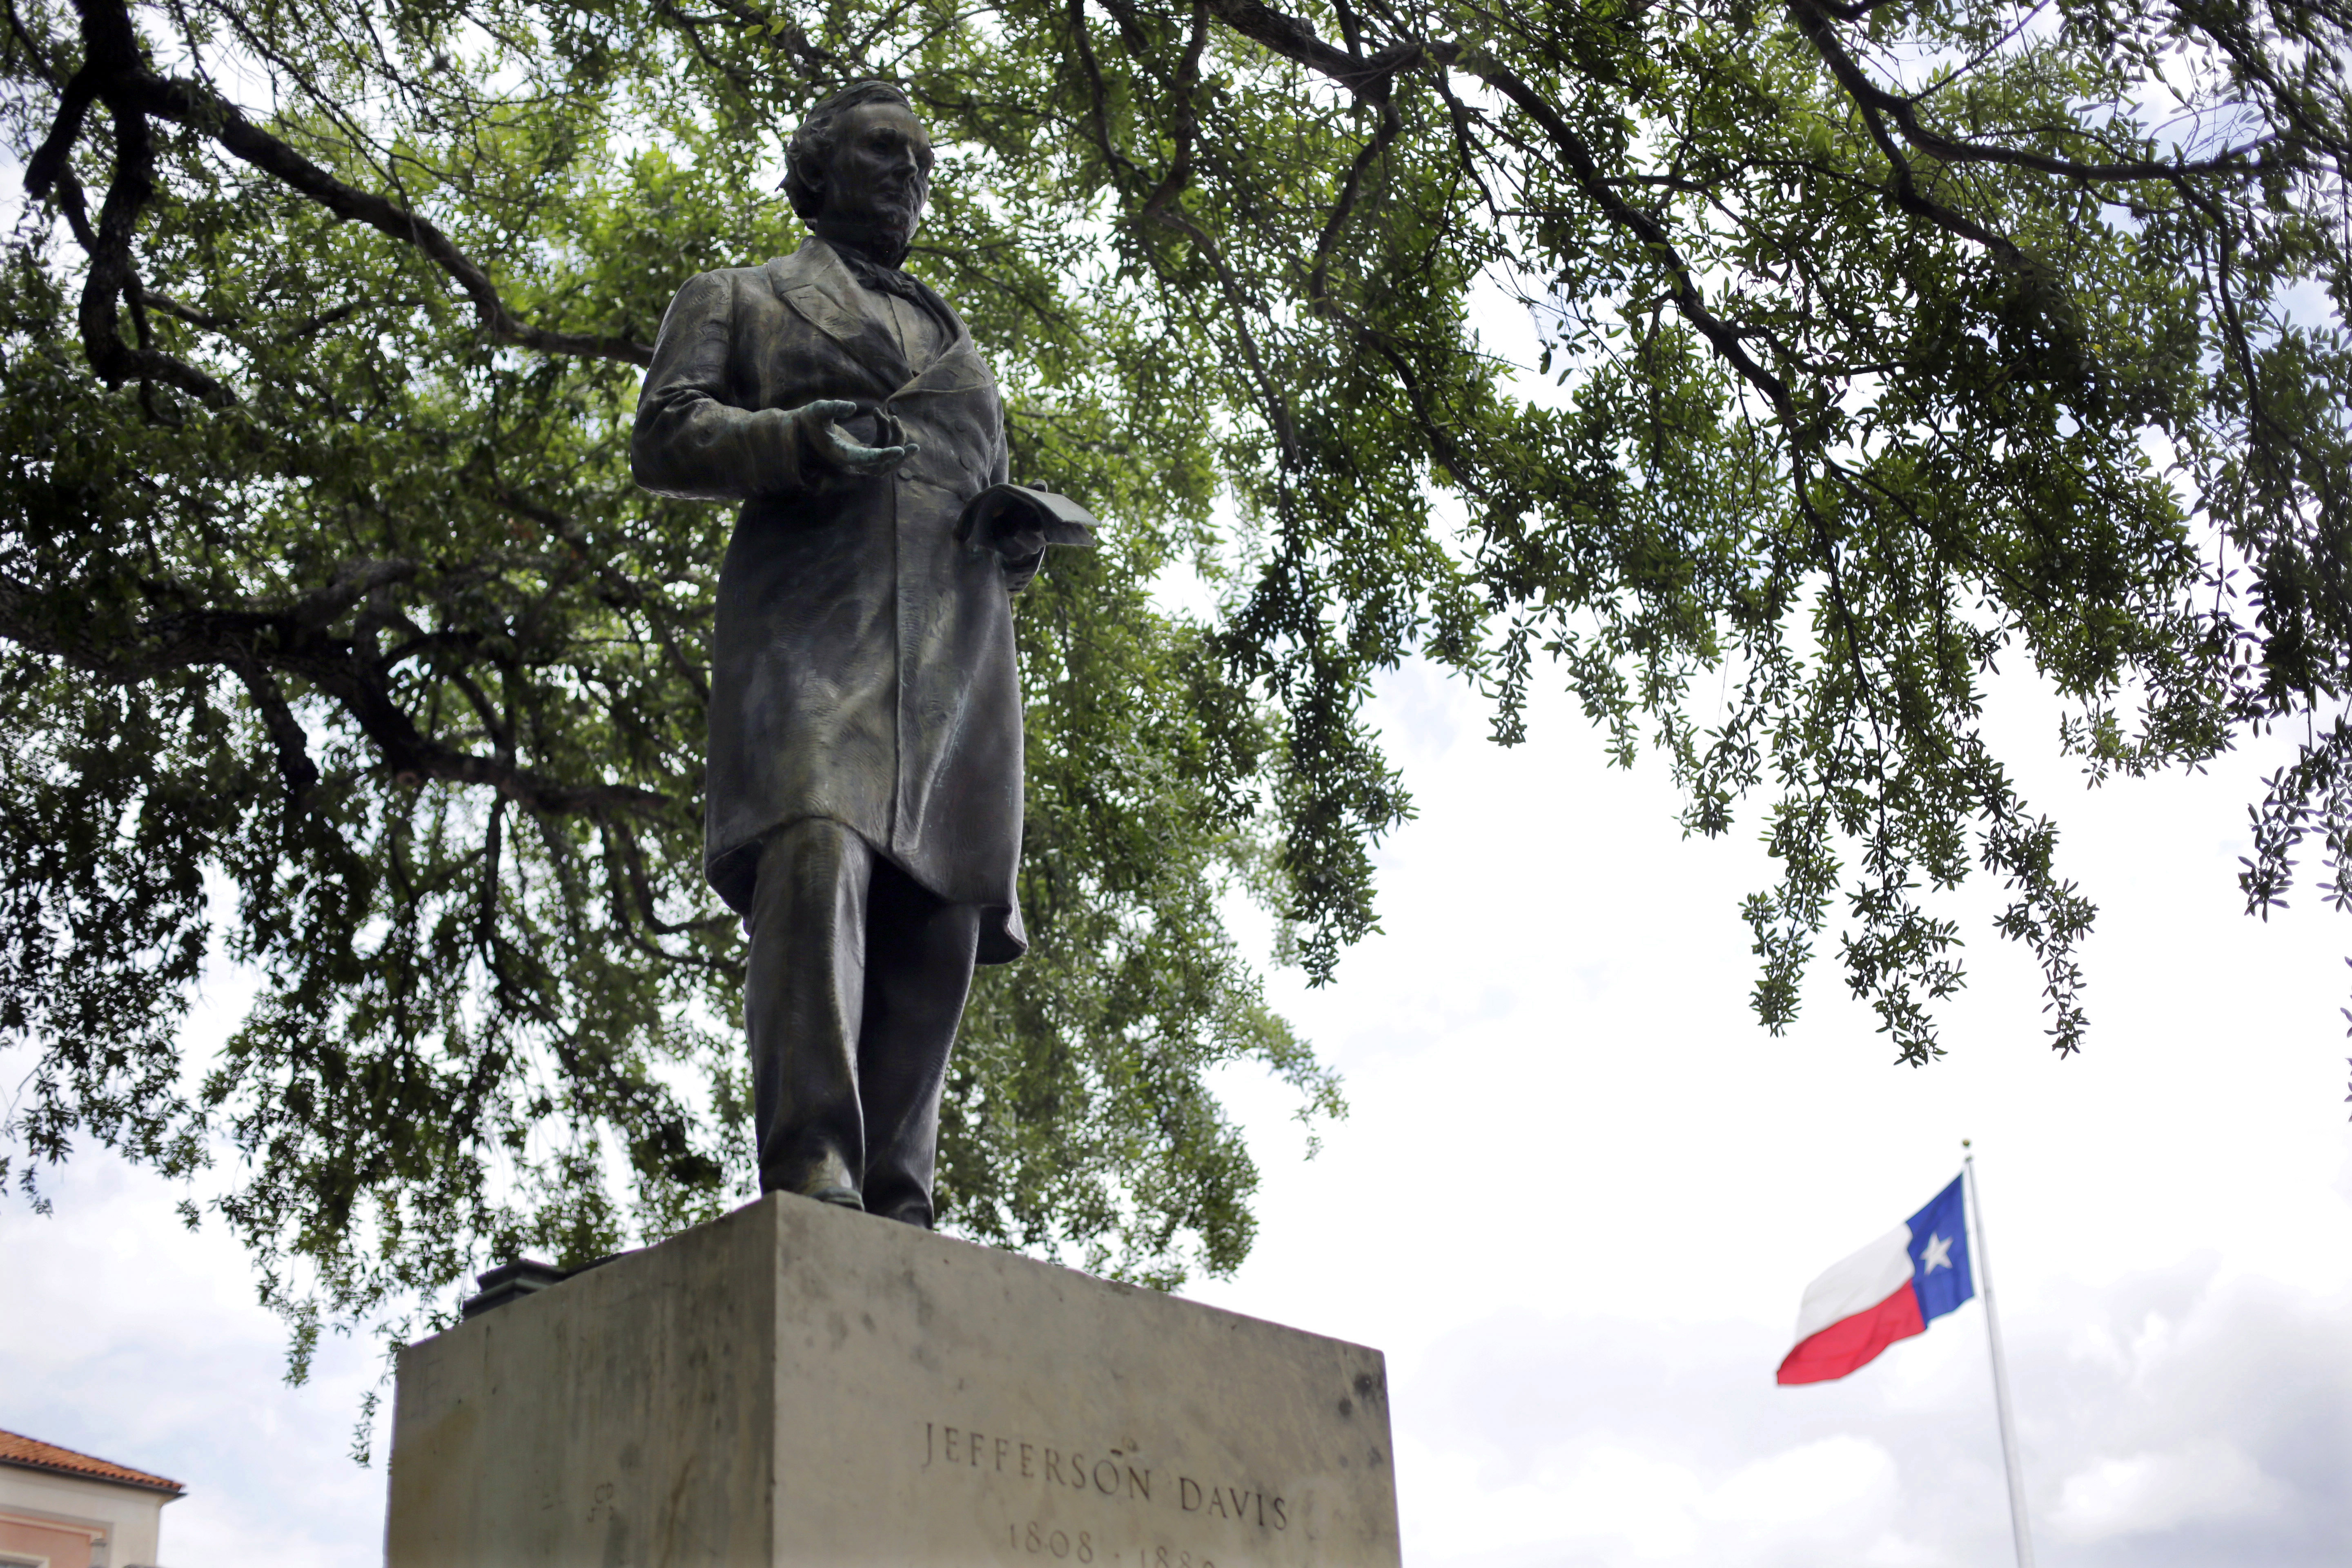 A statue of Jefferson Davis is seen on the University of Texas campus in Austin on May 5, 2015.